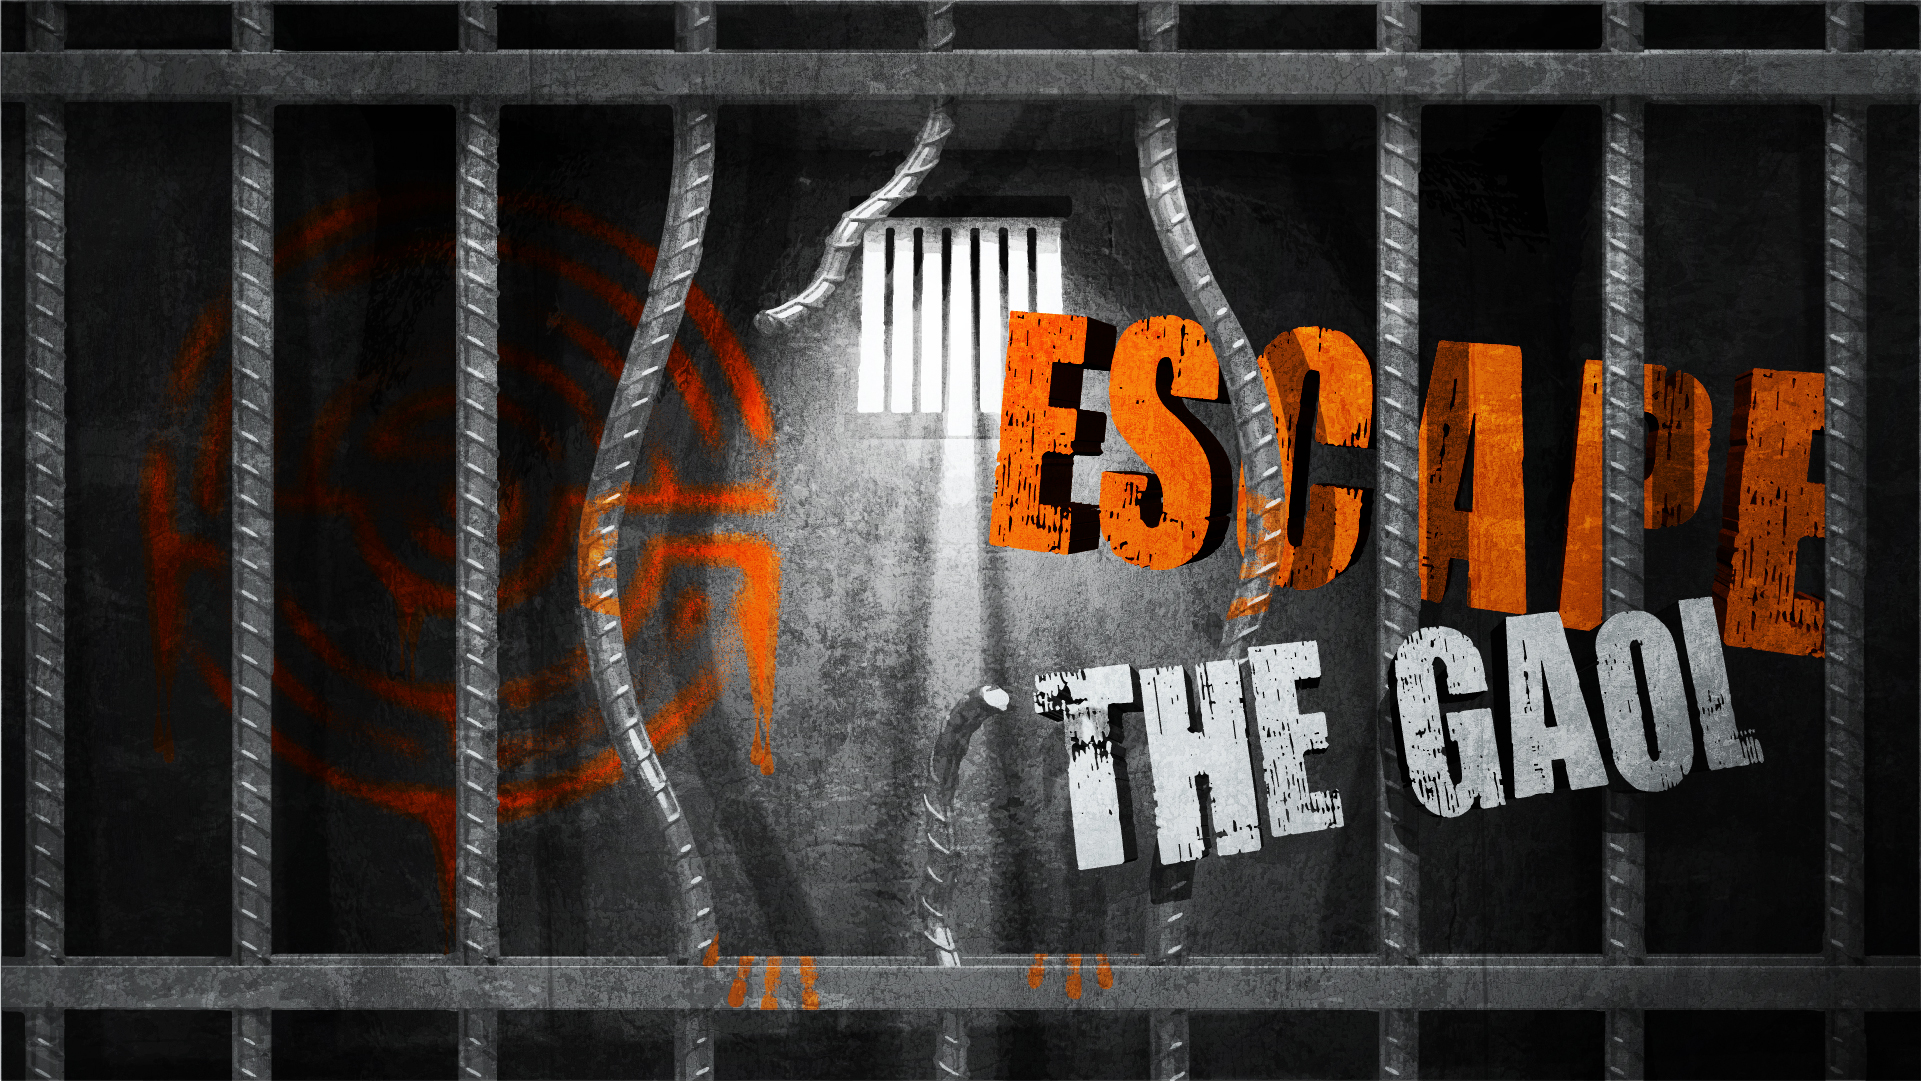 Escape the gaol - Don't forget you volunteered for this experiment!From the moment that orange jumpsuit goes on you are nothing but a prisoner. Find out if you have what it takes to solve the challenges ahead and escape your incarceration in our 90 minute immersive experience.